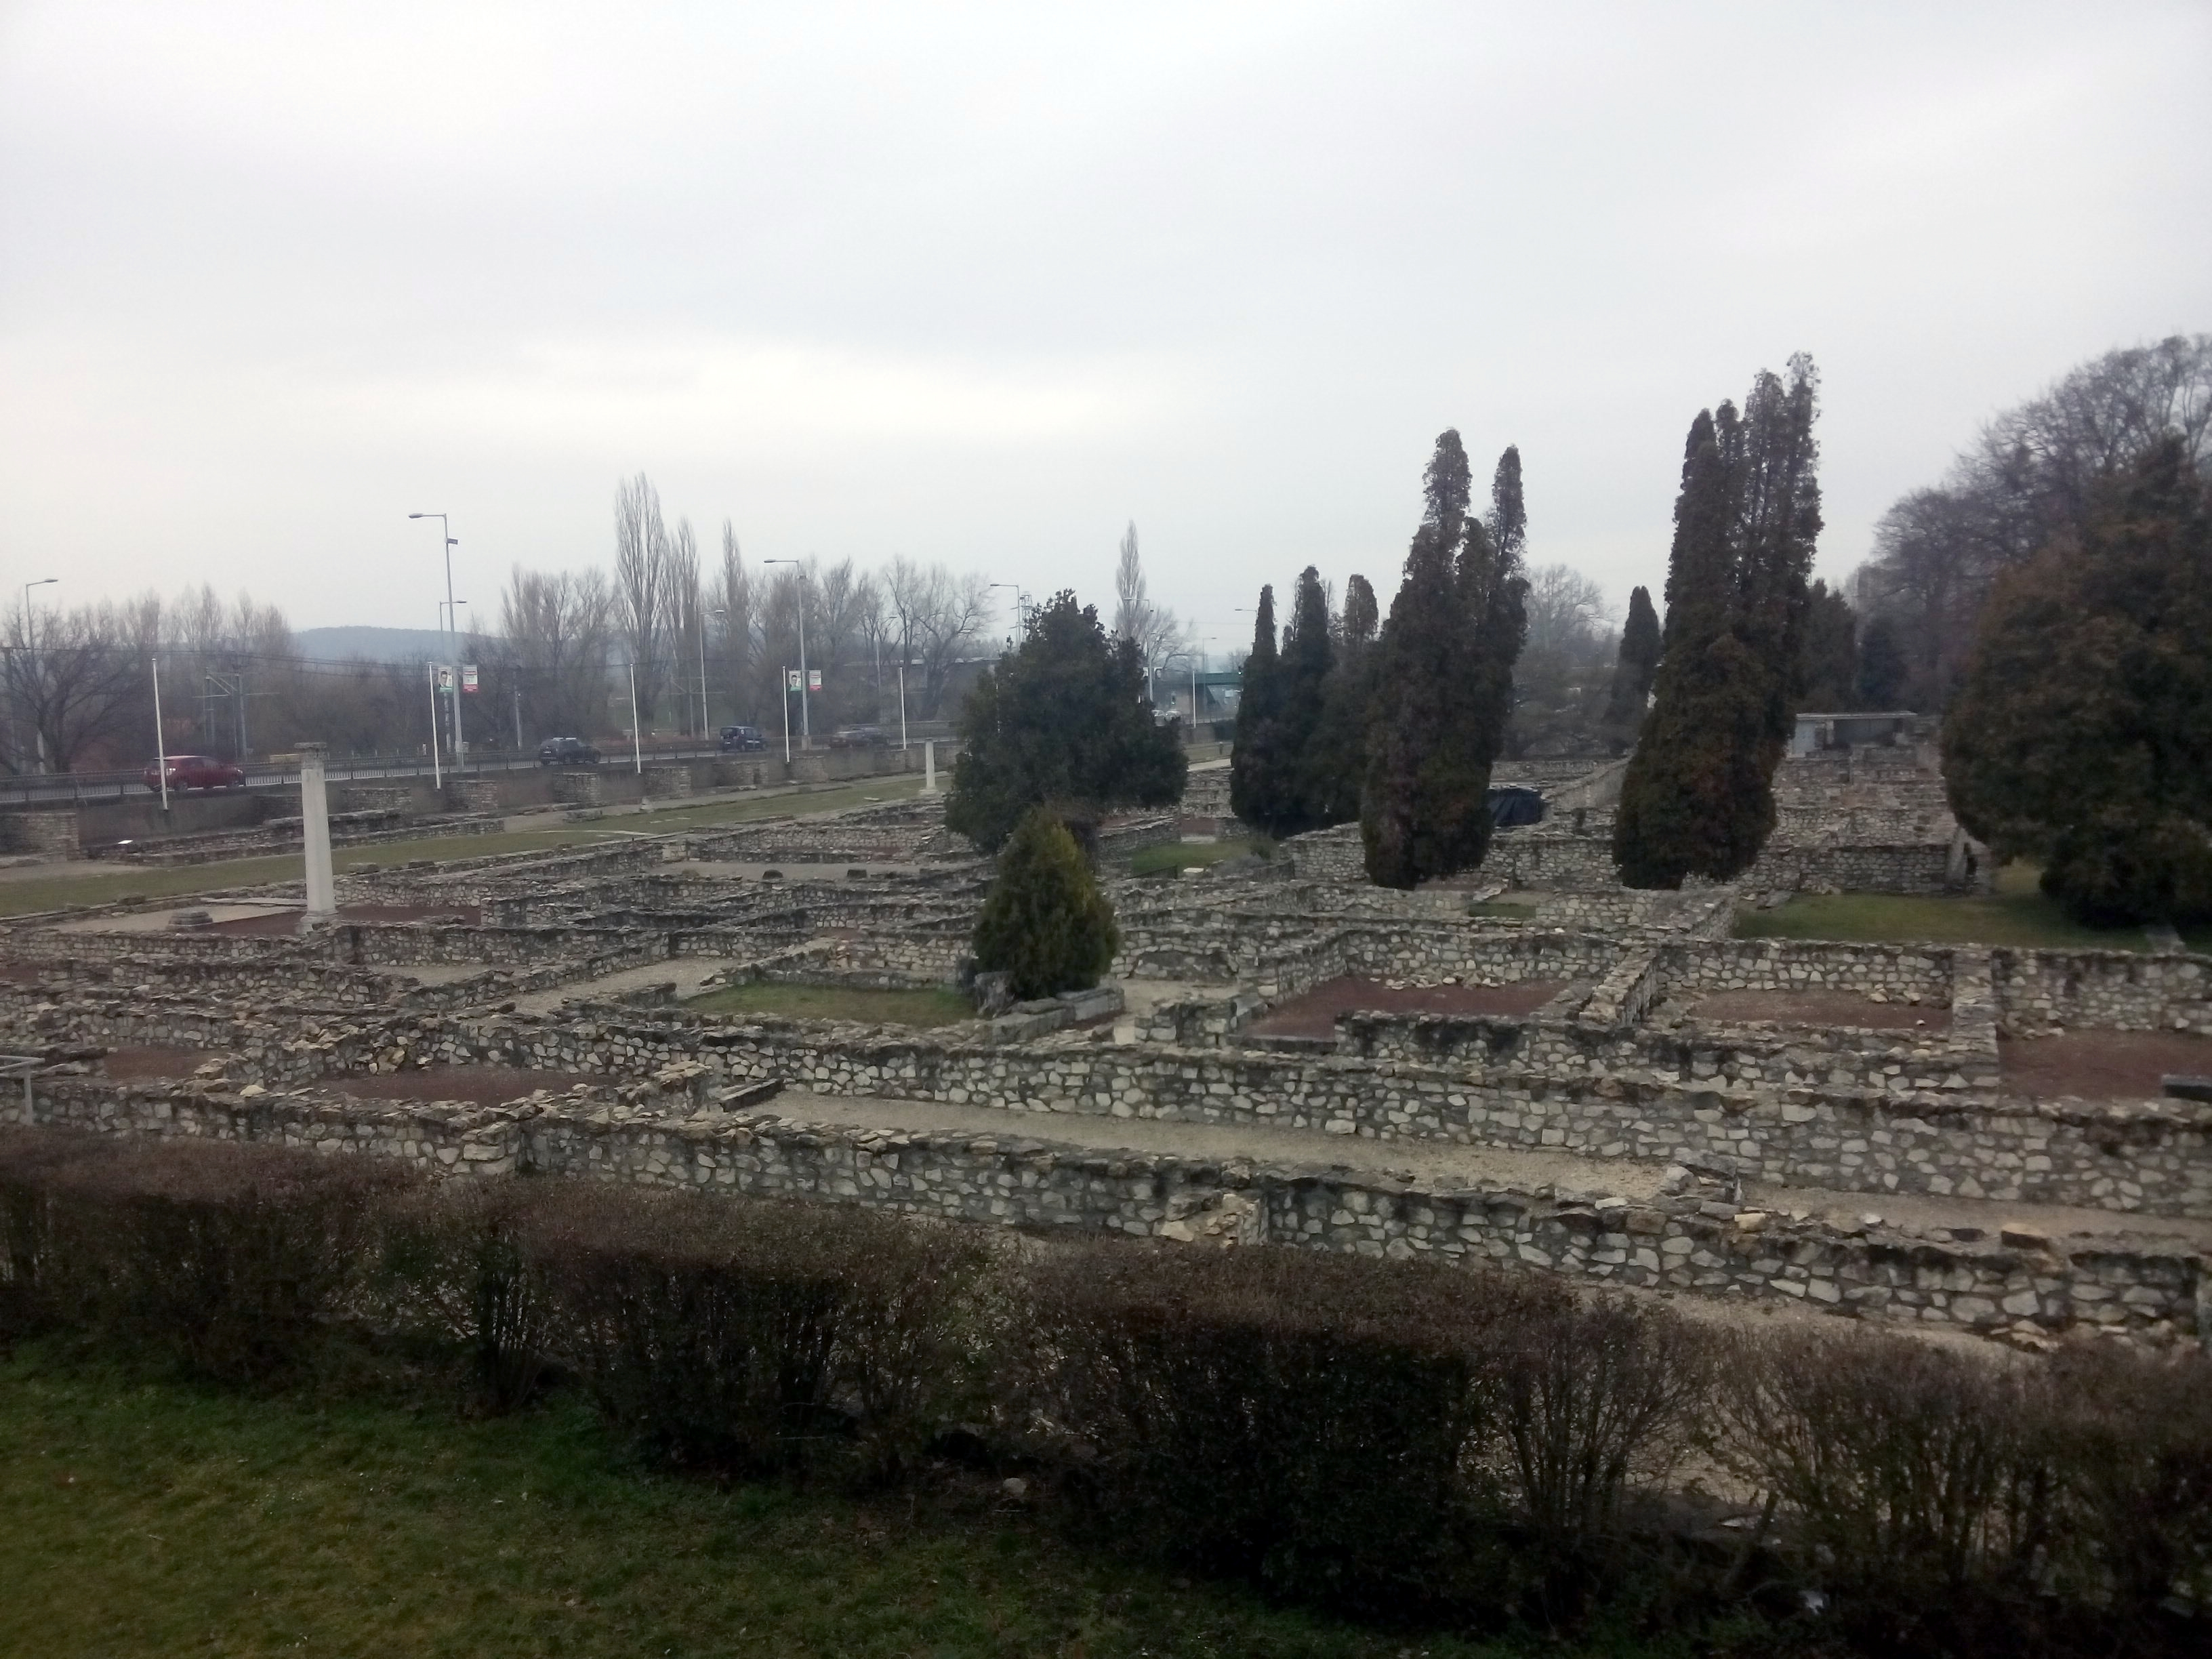 White sky, dark green trees, around the remains of stone walls in the ground